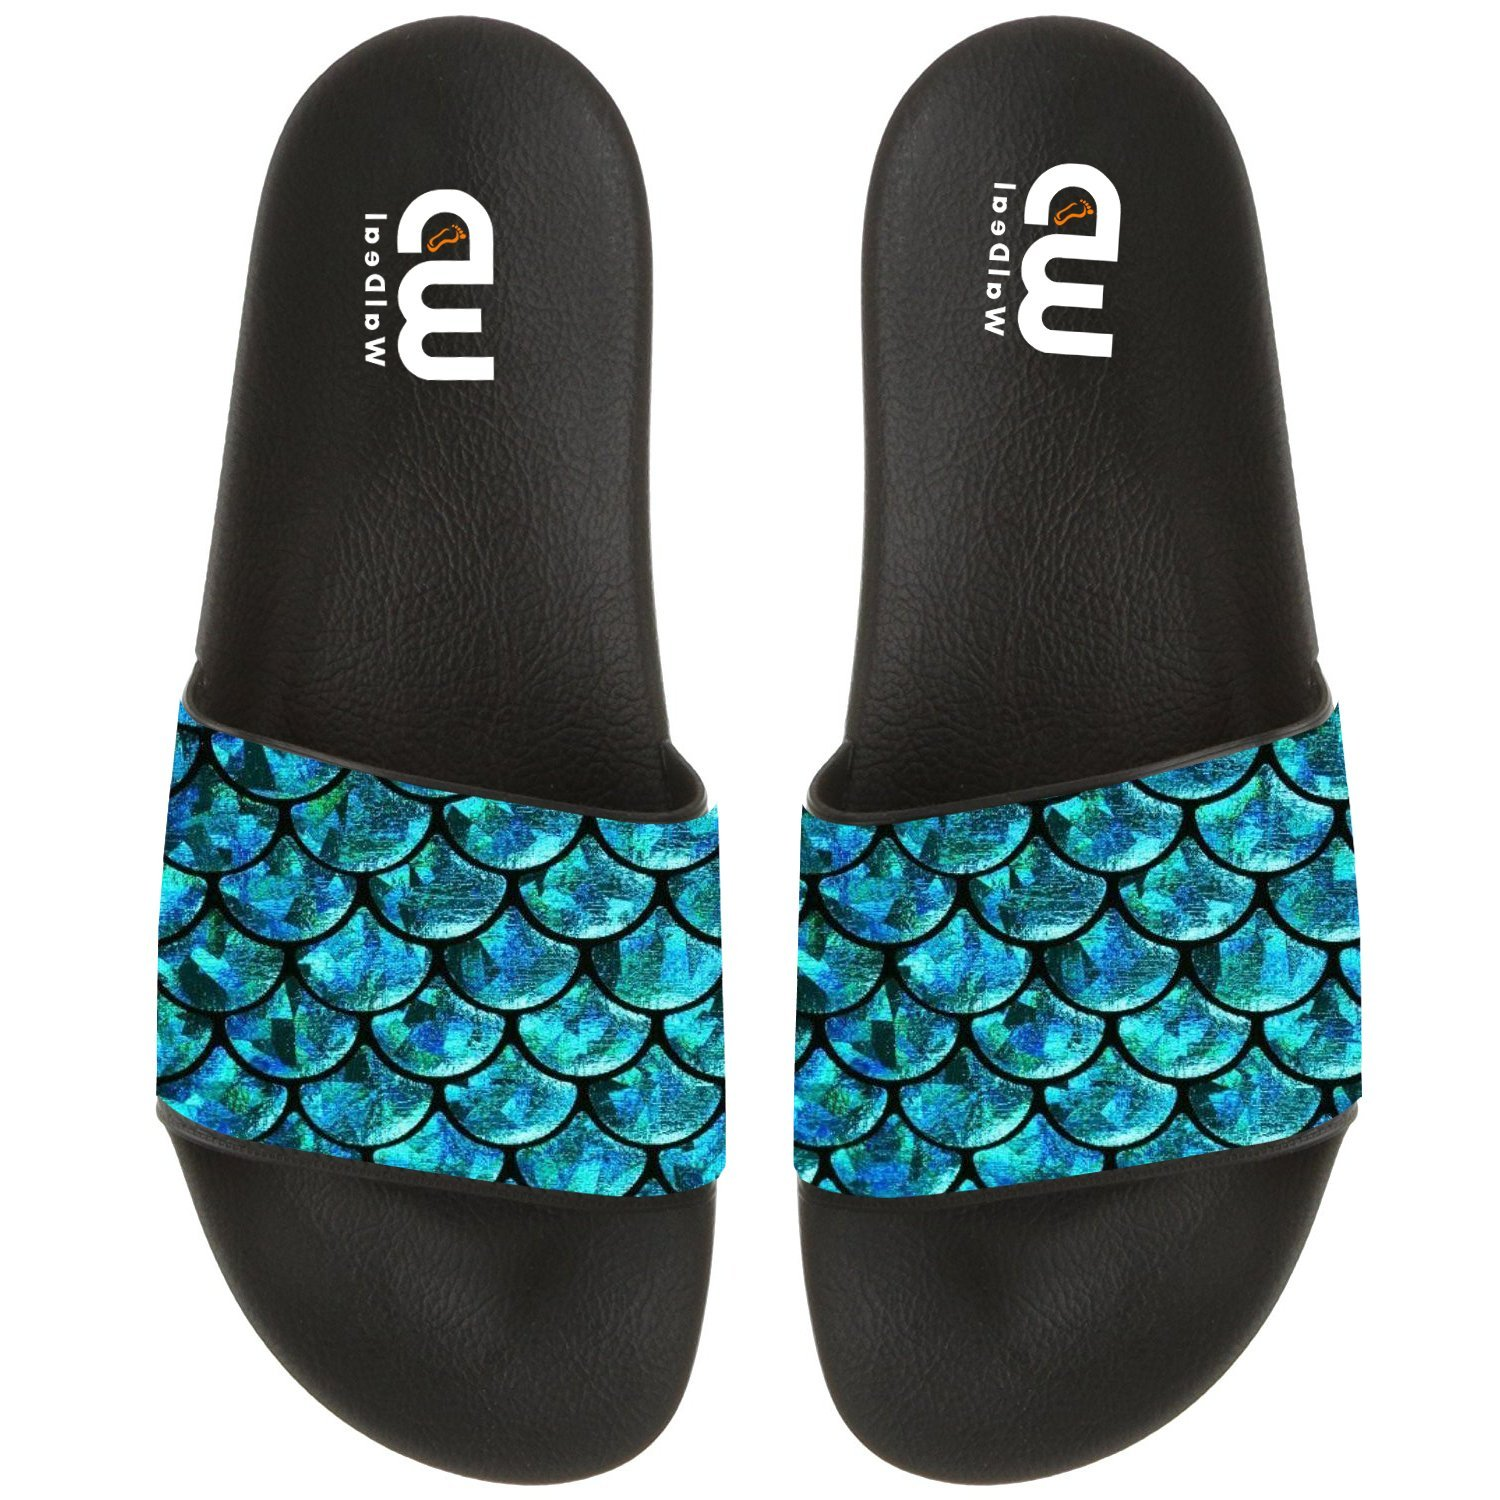 Green Cute Mermaid Scales Summer Slide Slippers For Boy Girl Outdoor Beach Sandal Shoes size 2